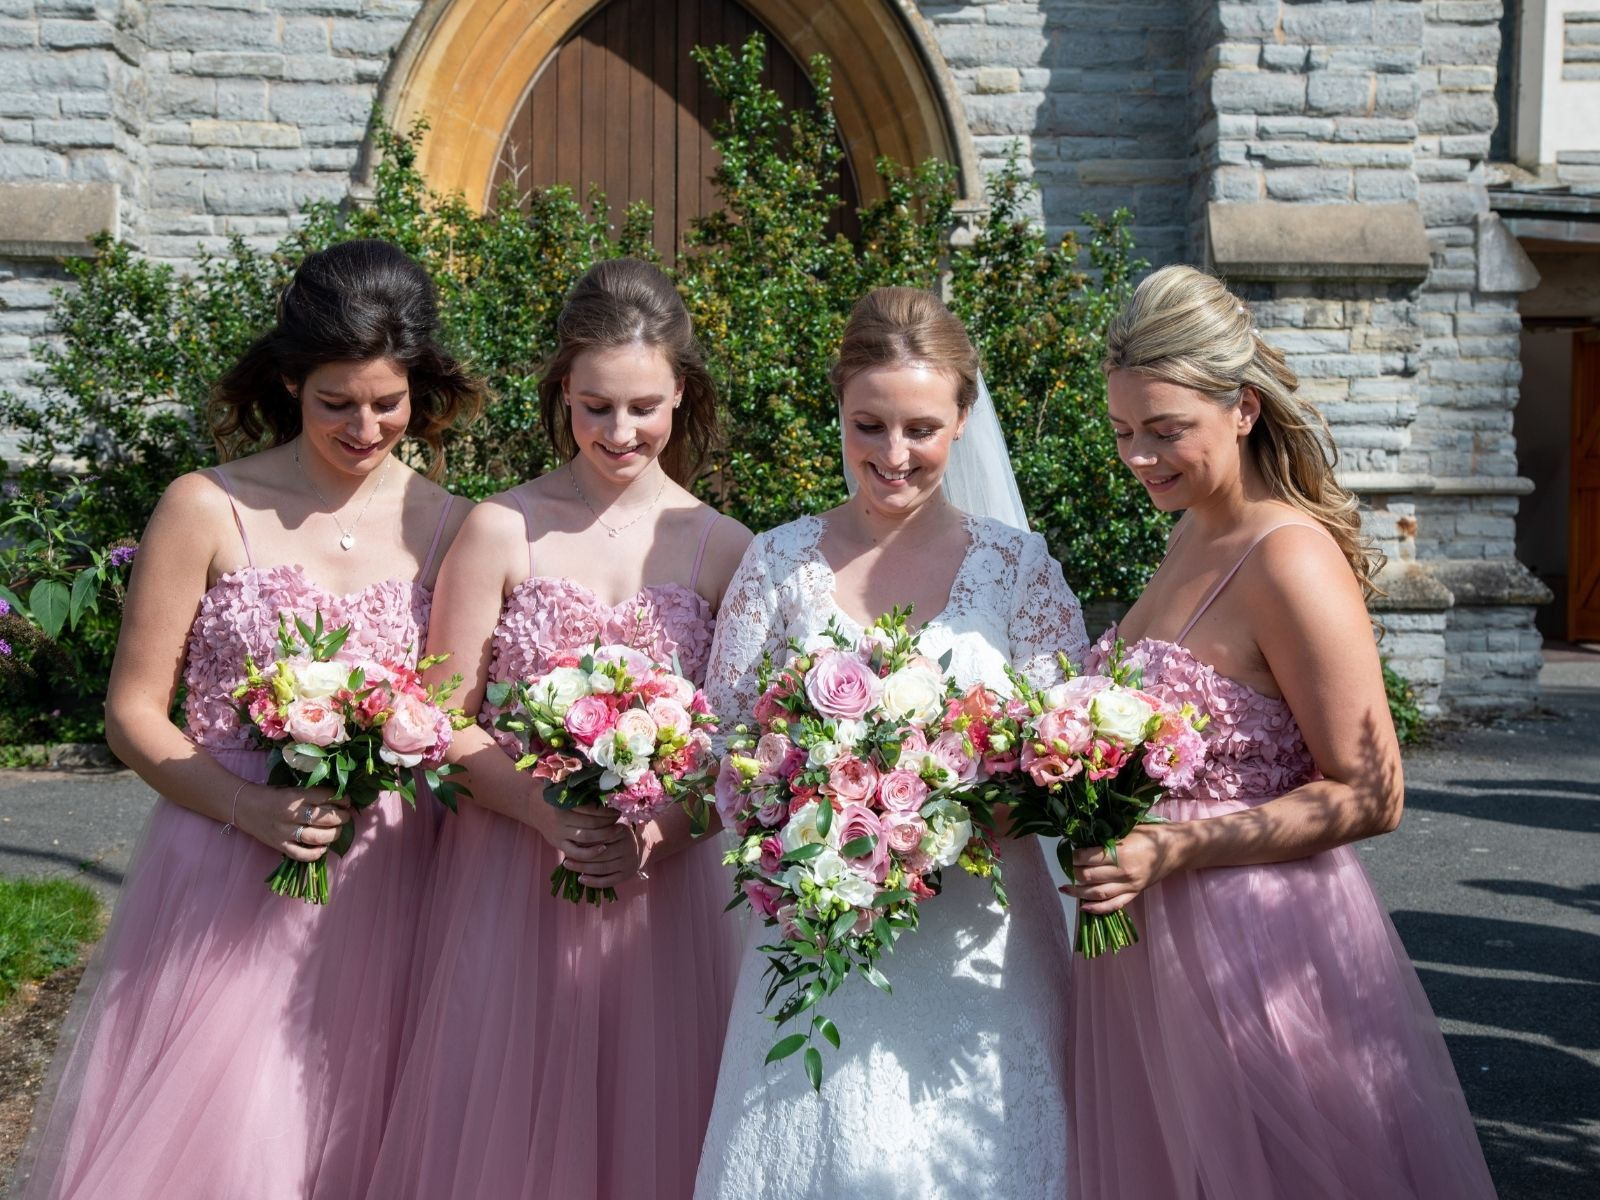 Boho bride with her bridesmaids in blush pink wedding dresses